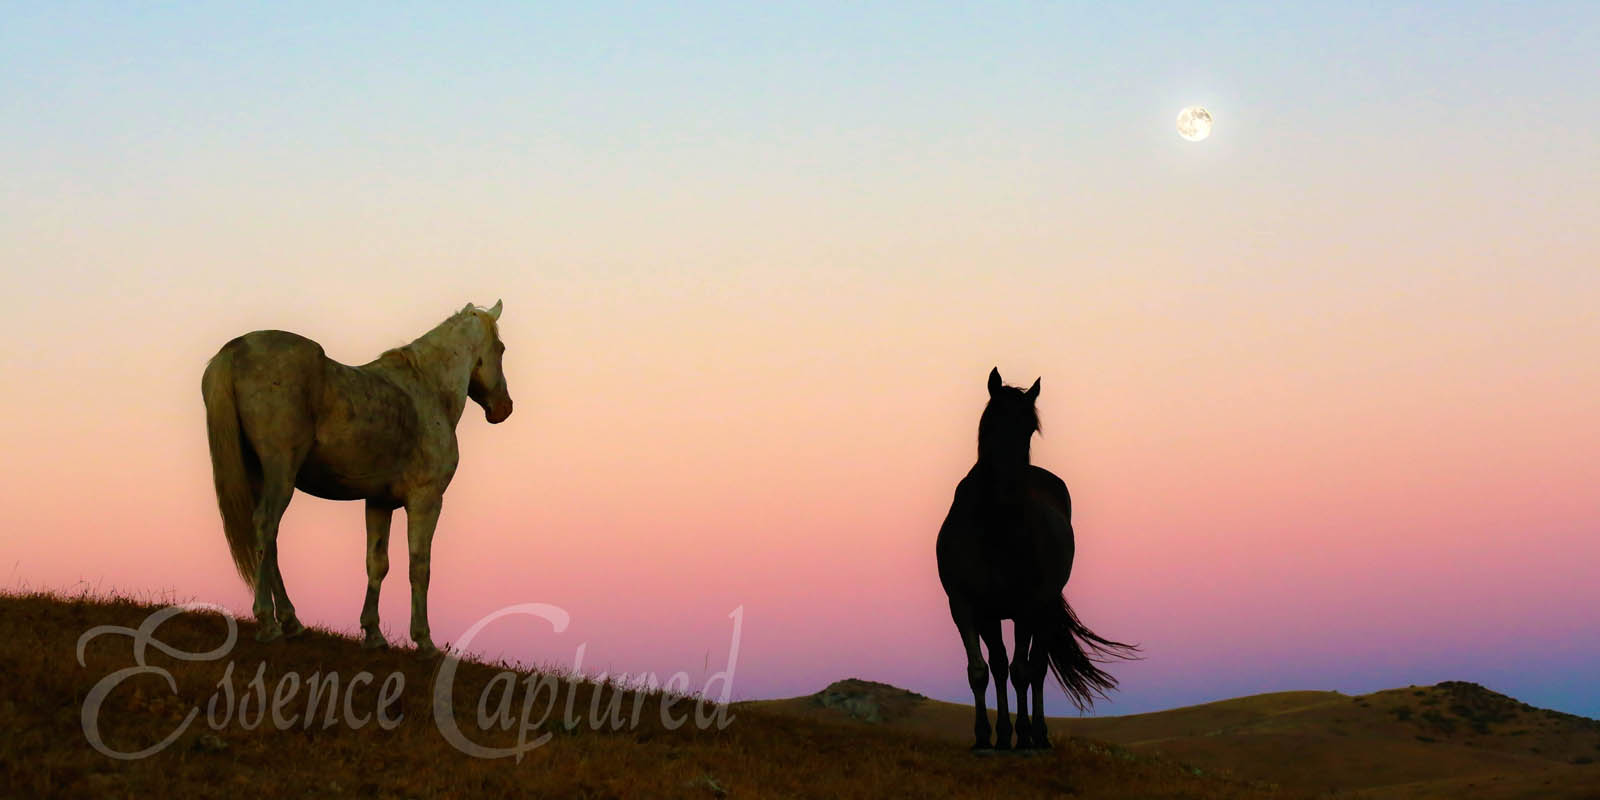 two horses silhouetted sunset pink orange blue sky full moon